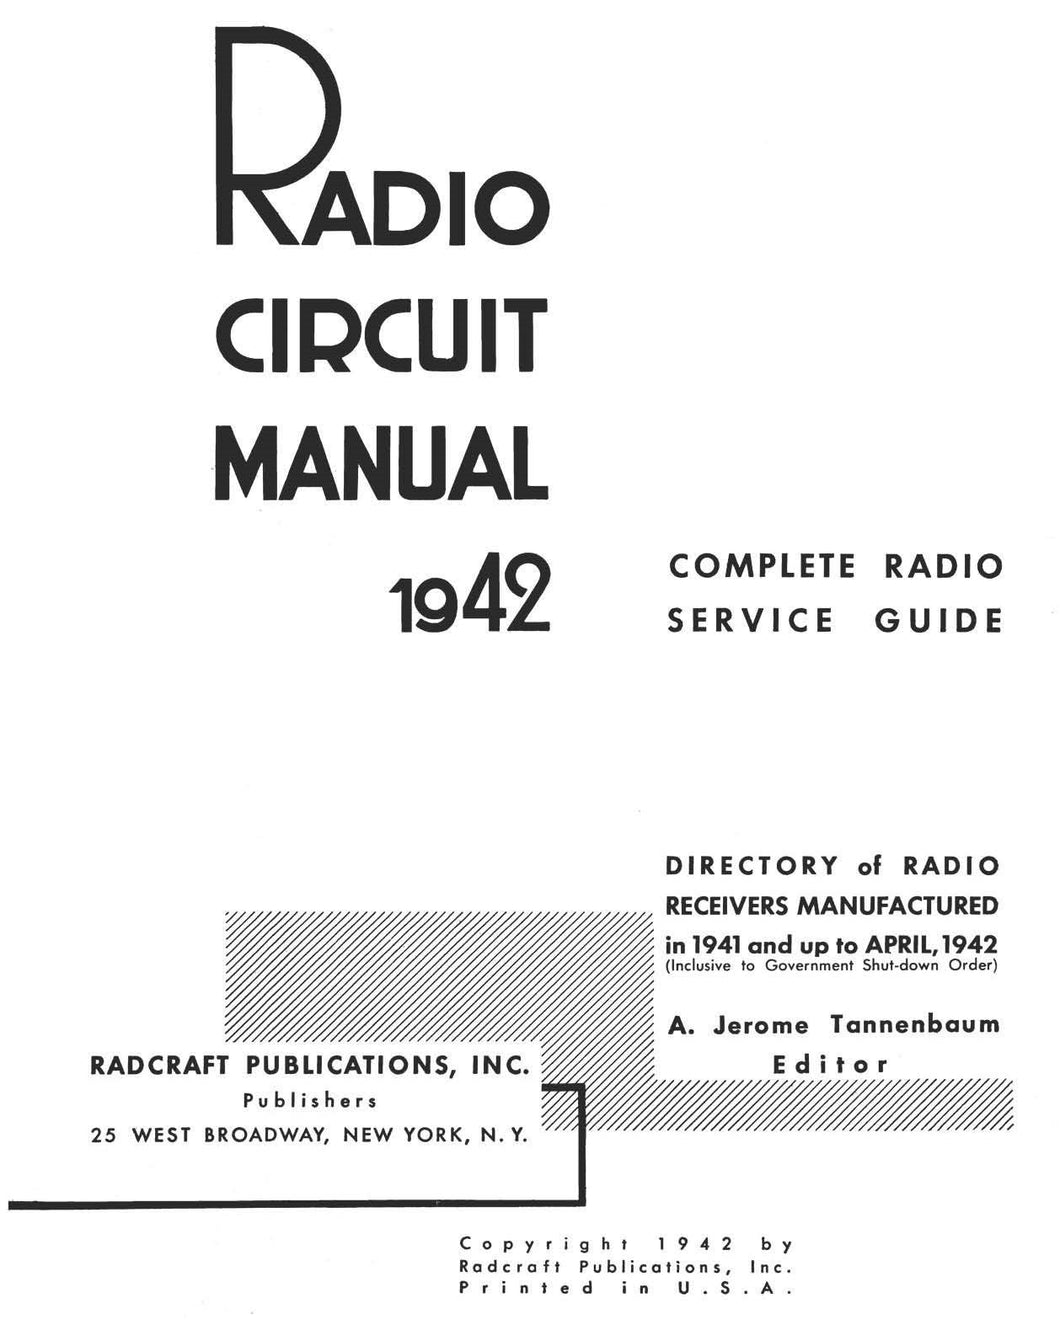 1942 Radio Circuit Manual